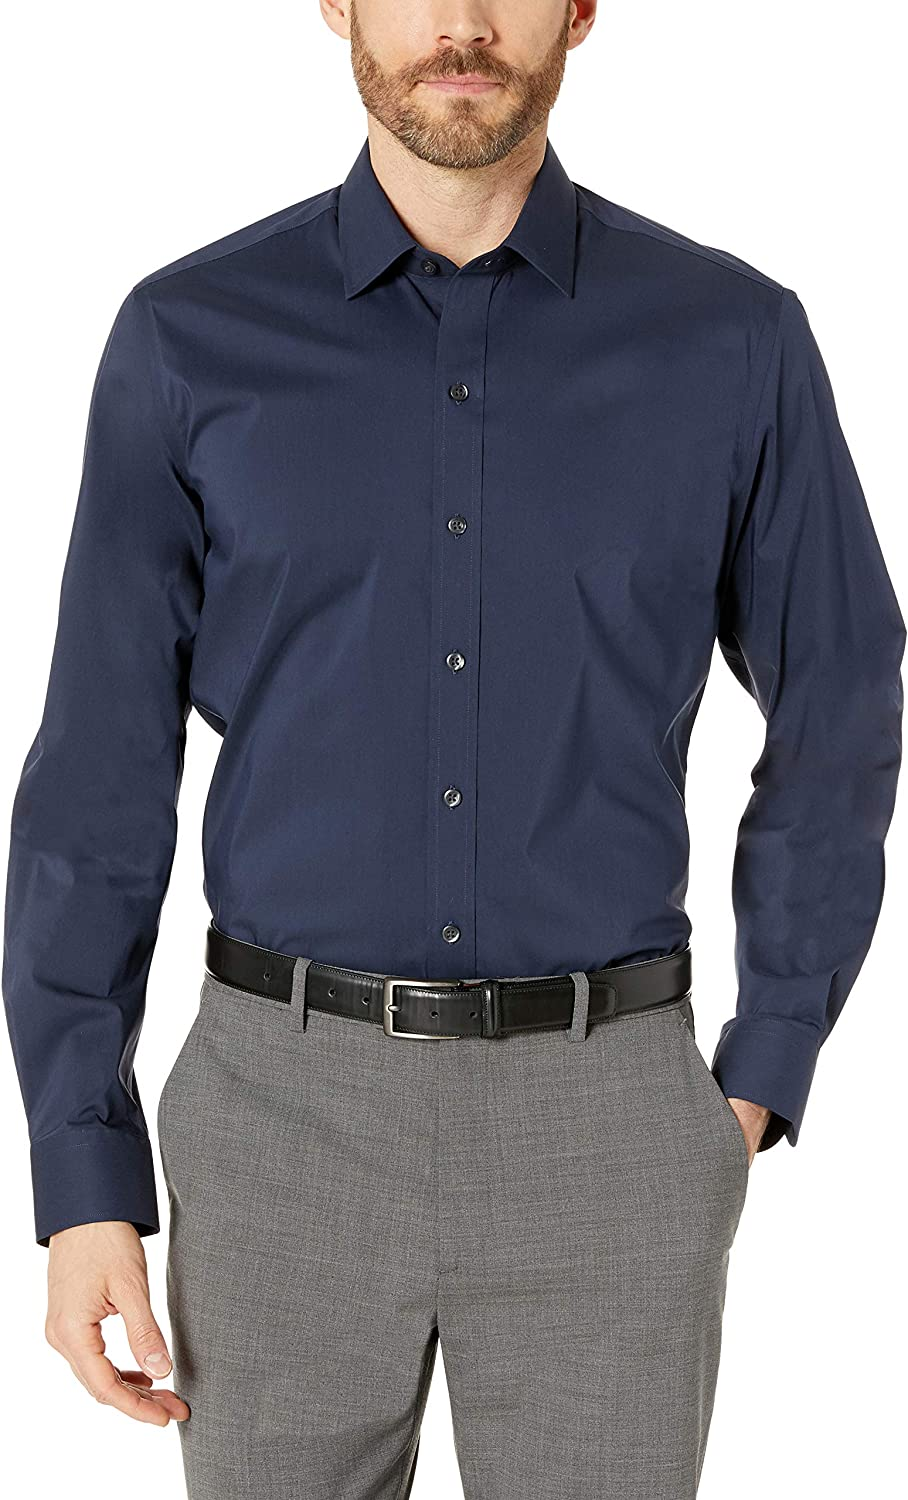 Brand BUTTONED DOWN Mens Slim Fit Performance Tech Stretch Dress Shirt Supima Cotton Easy Care